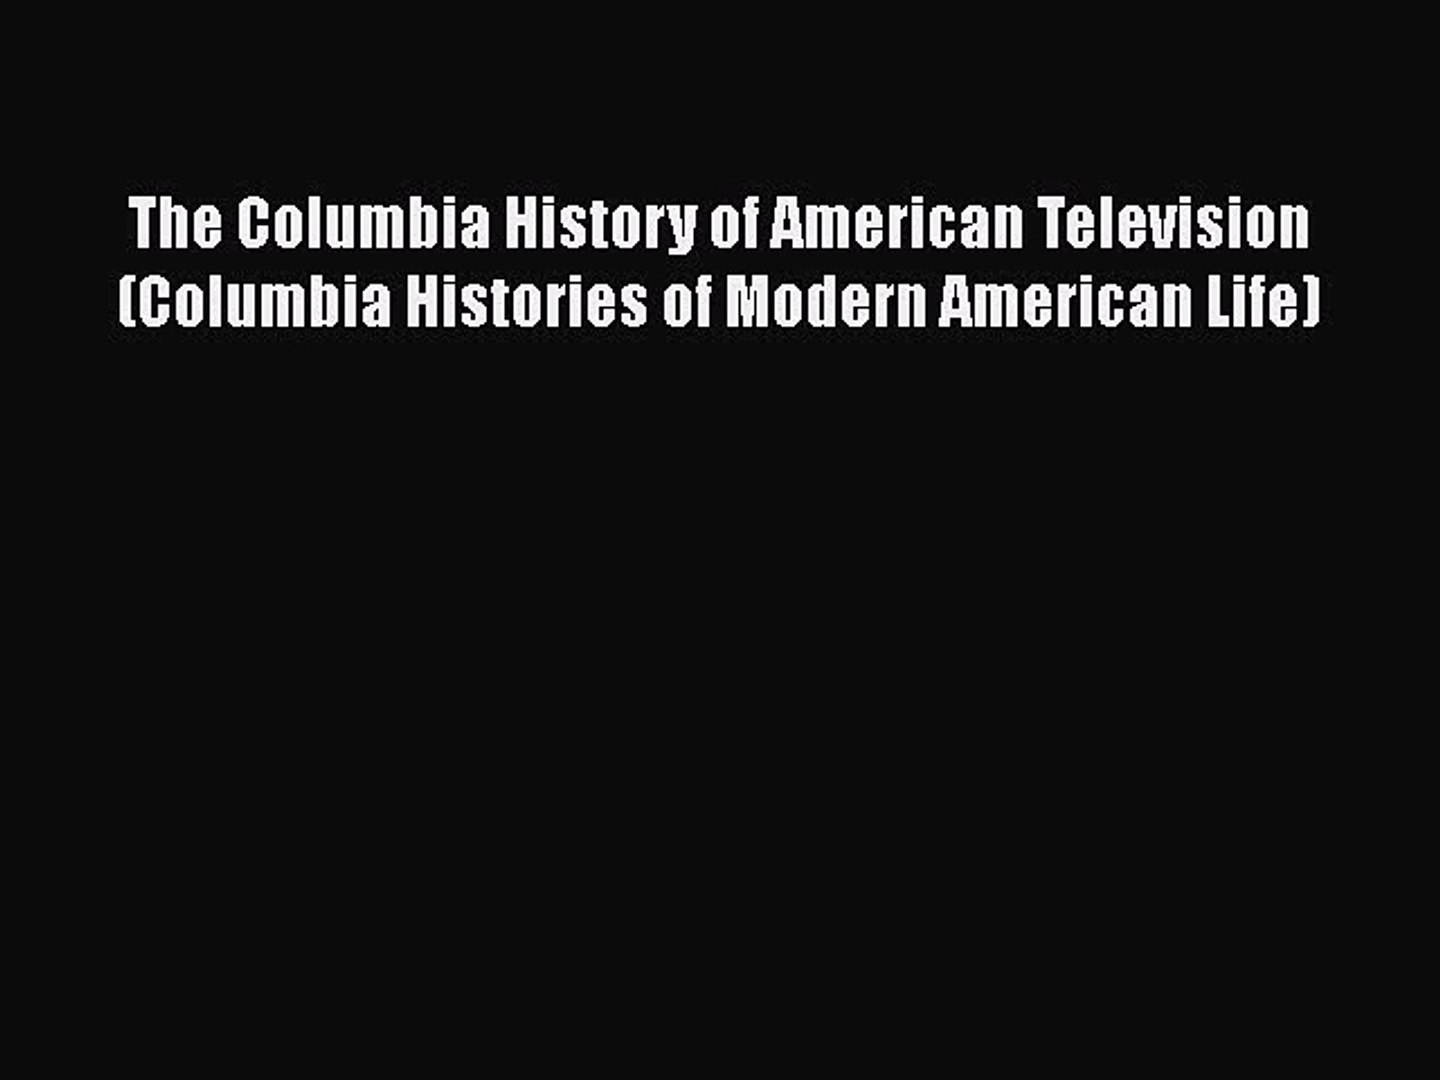 PDF The Columbia History of American Television (Columbia Histories of Modern American Life)